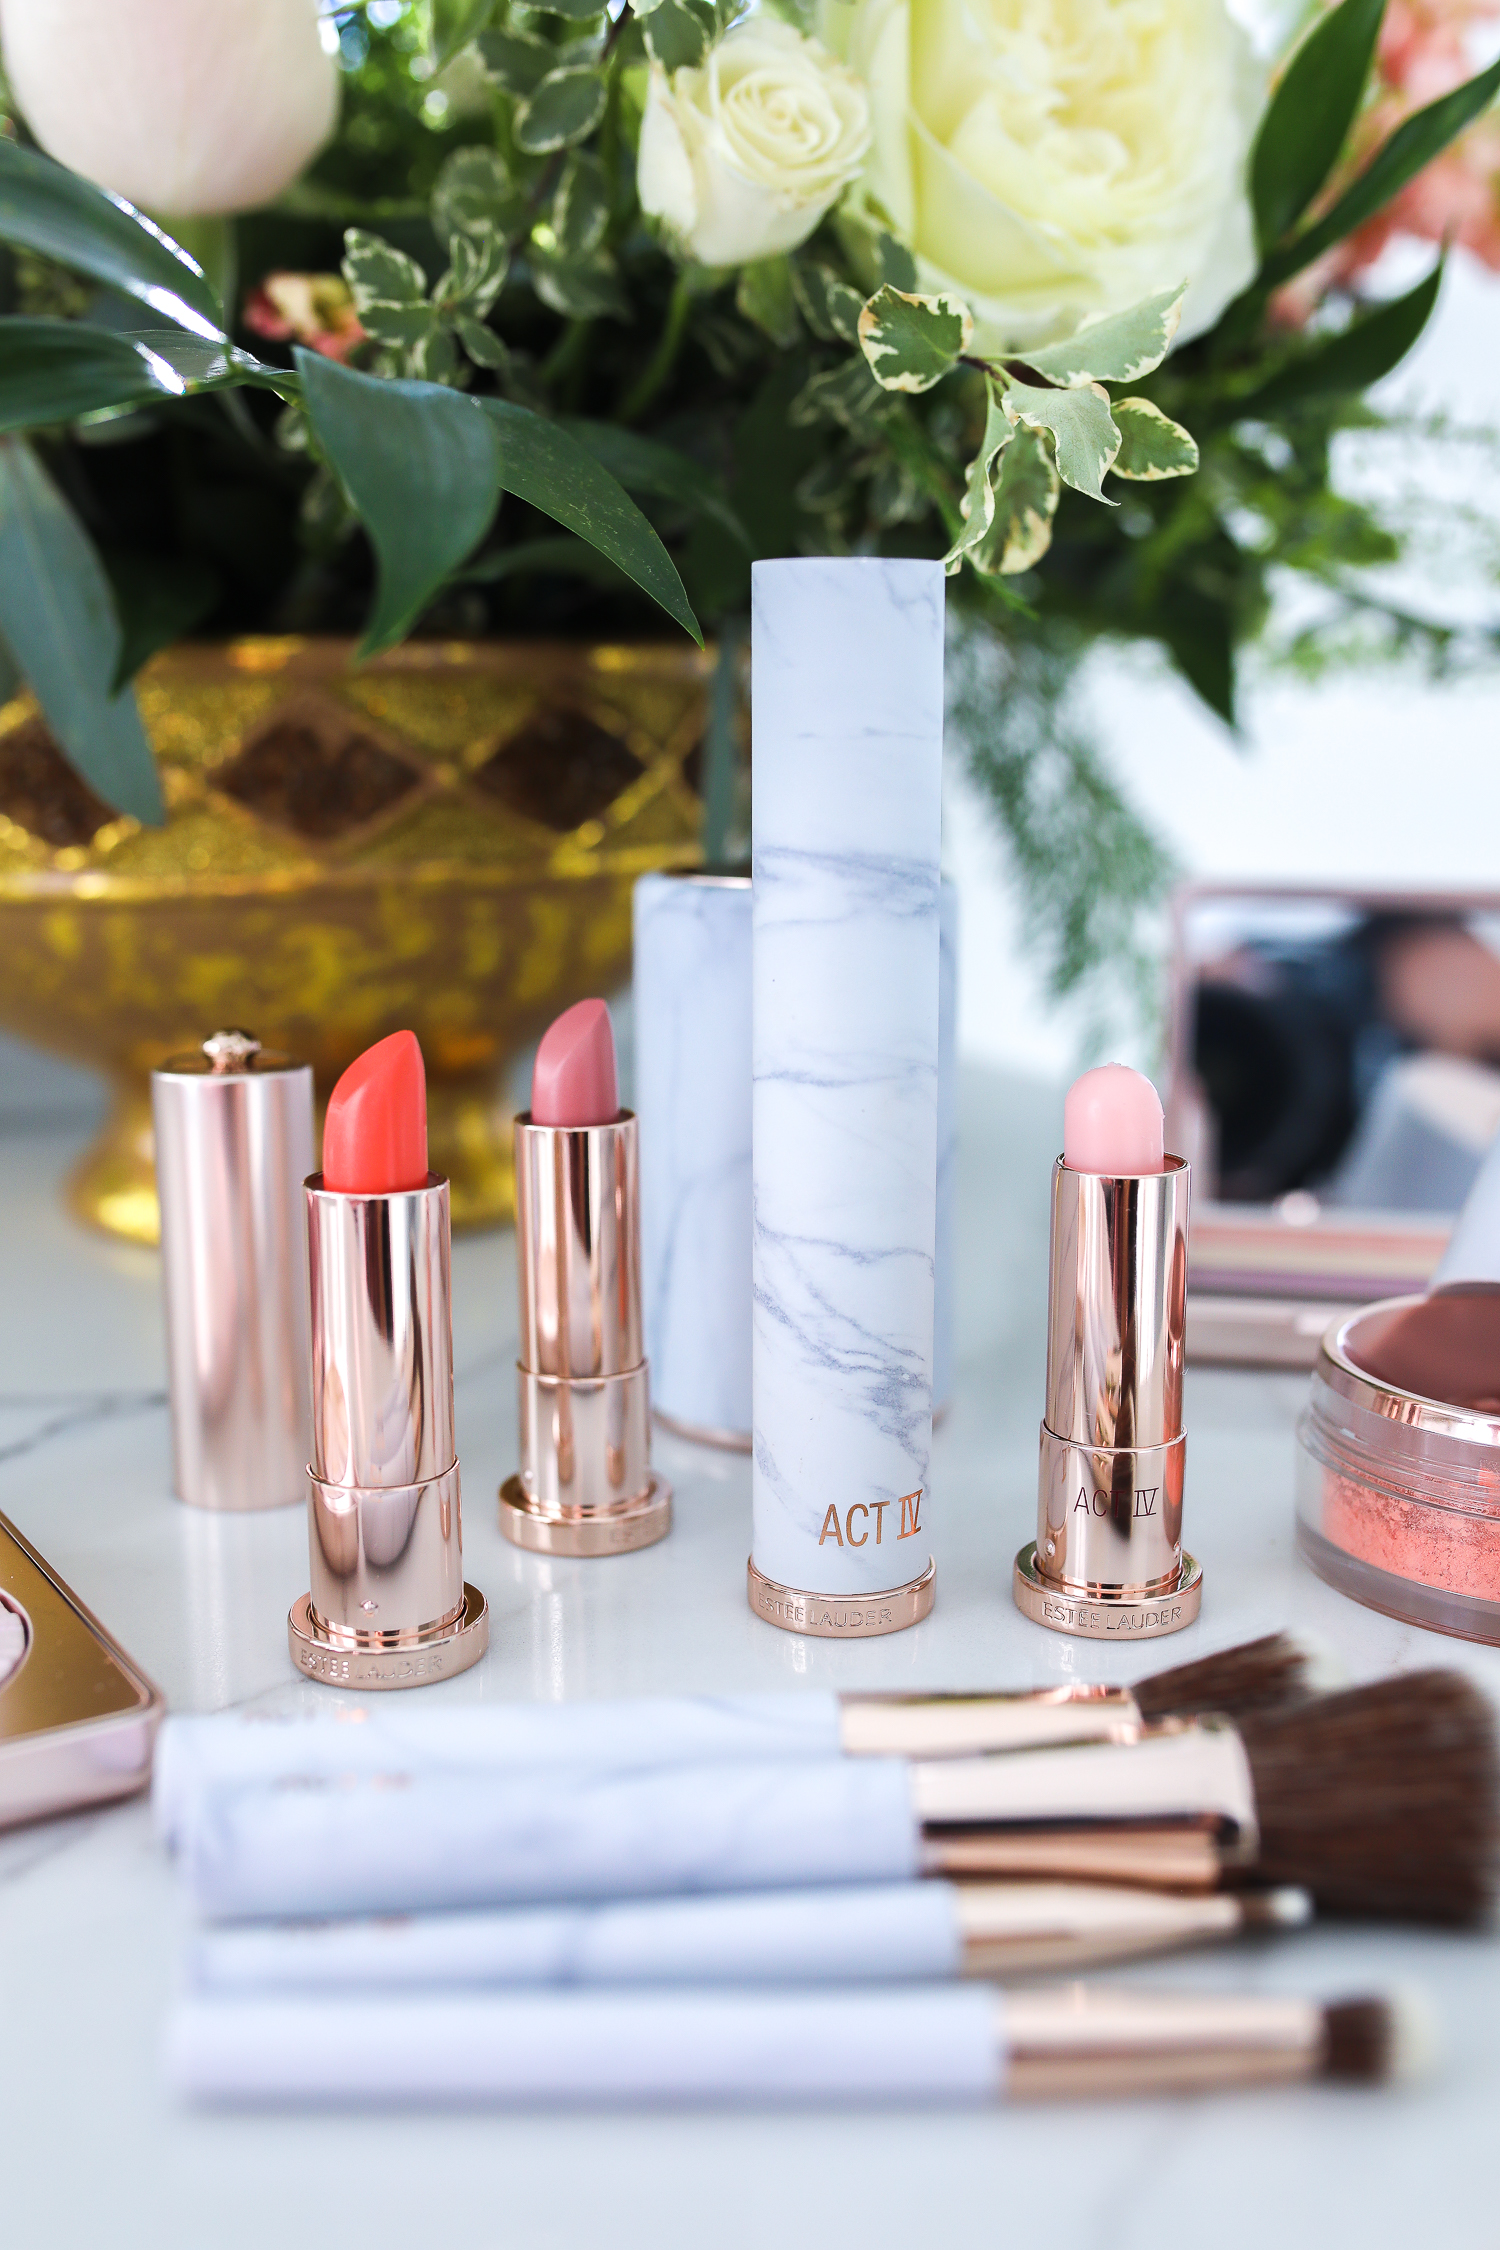 Estee Lauder Makeup by popular US beauty blog, The Sweetest Thing: image of Estee Lauder Act IV makeup products.